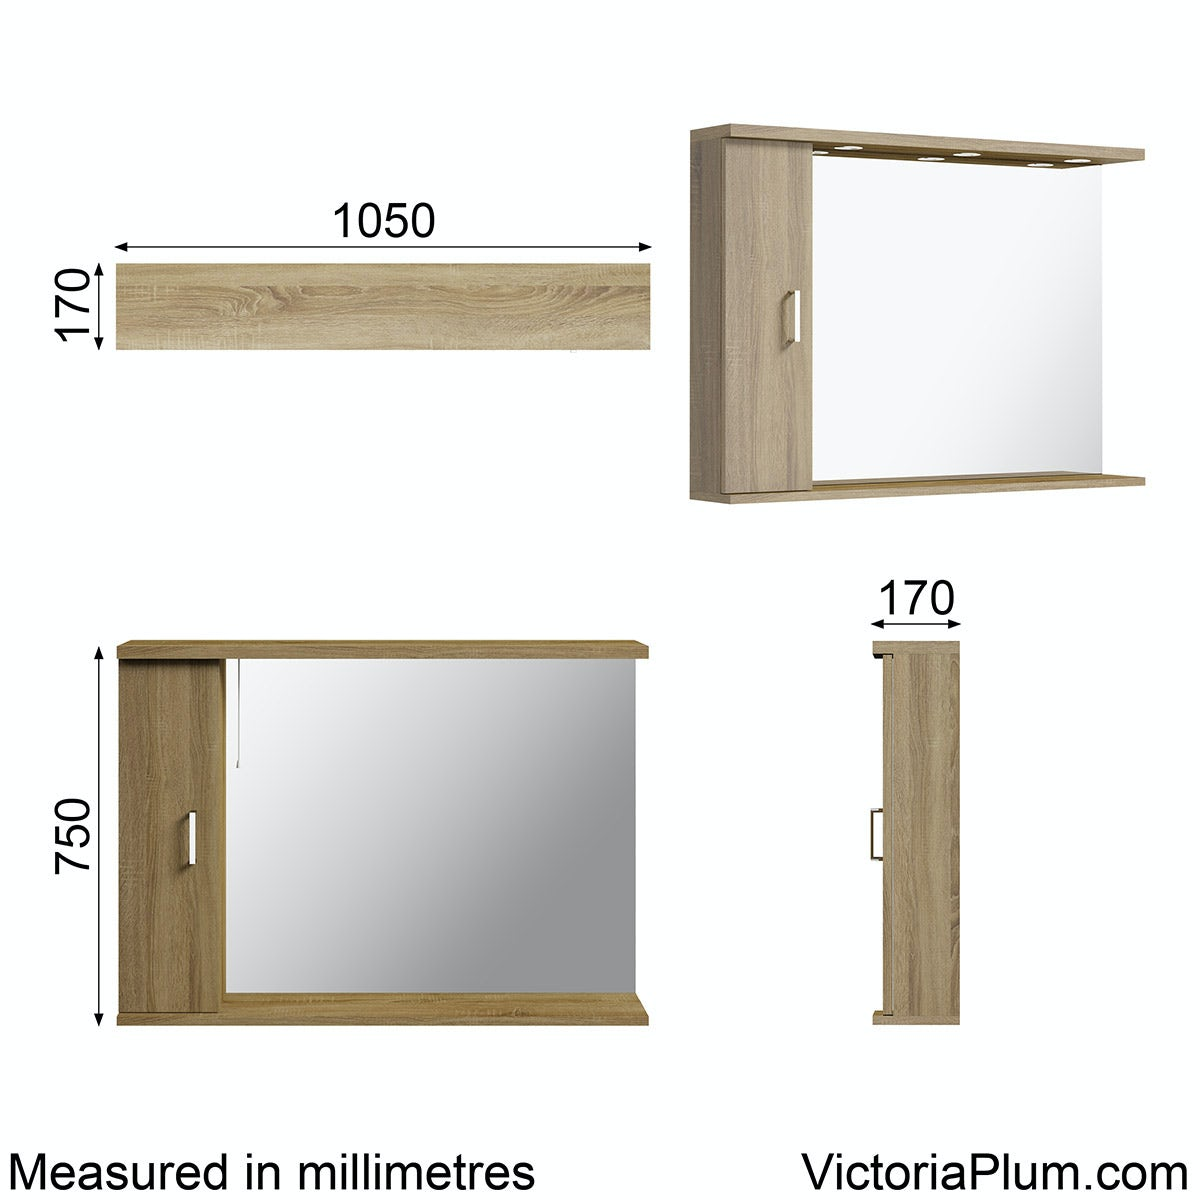 Dimensions for Sienna oak bathroom mirror with lights 1050mm